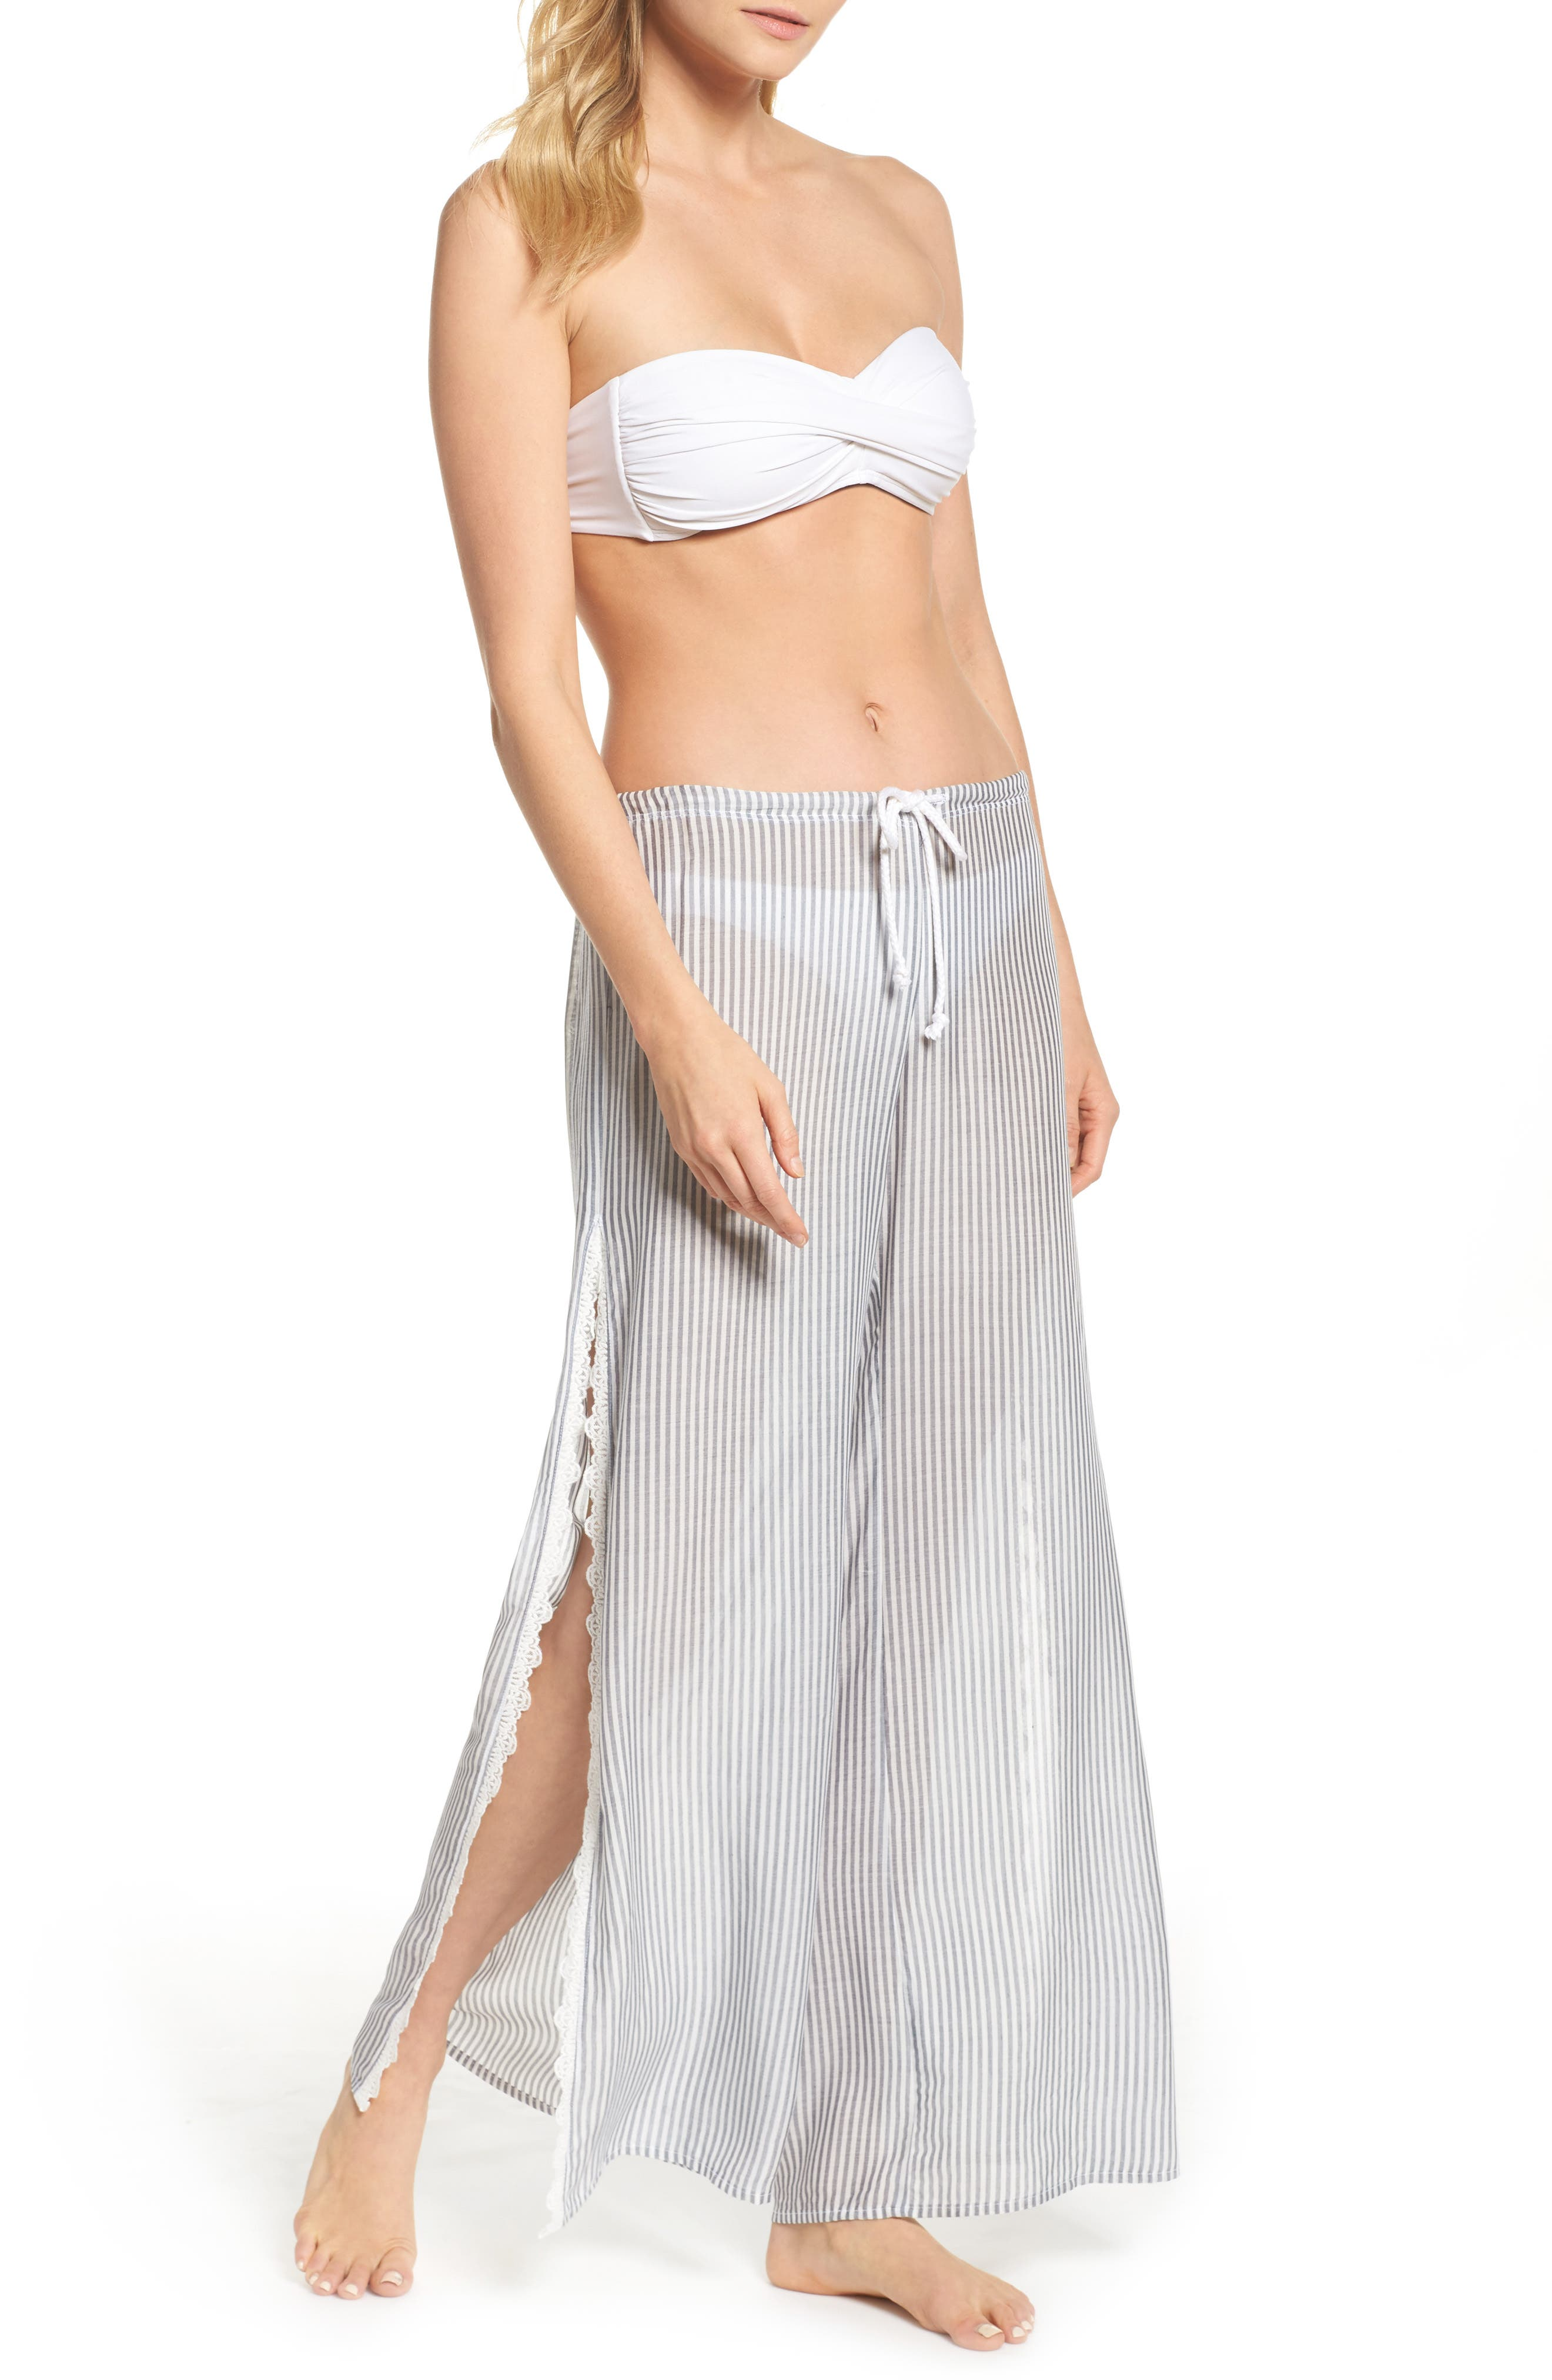 Nantucket Cover-Up Pants,                         Main,                         color, 488